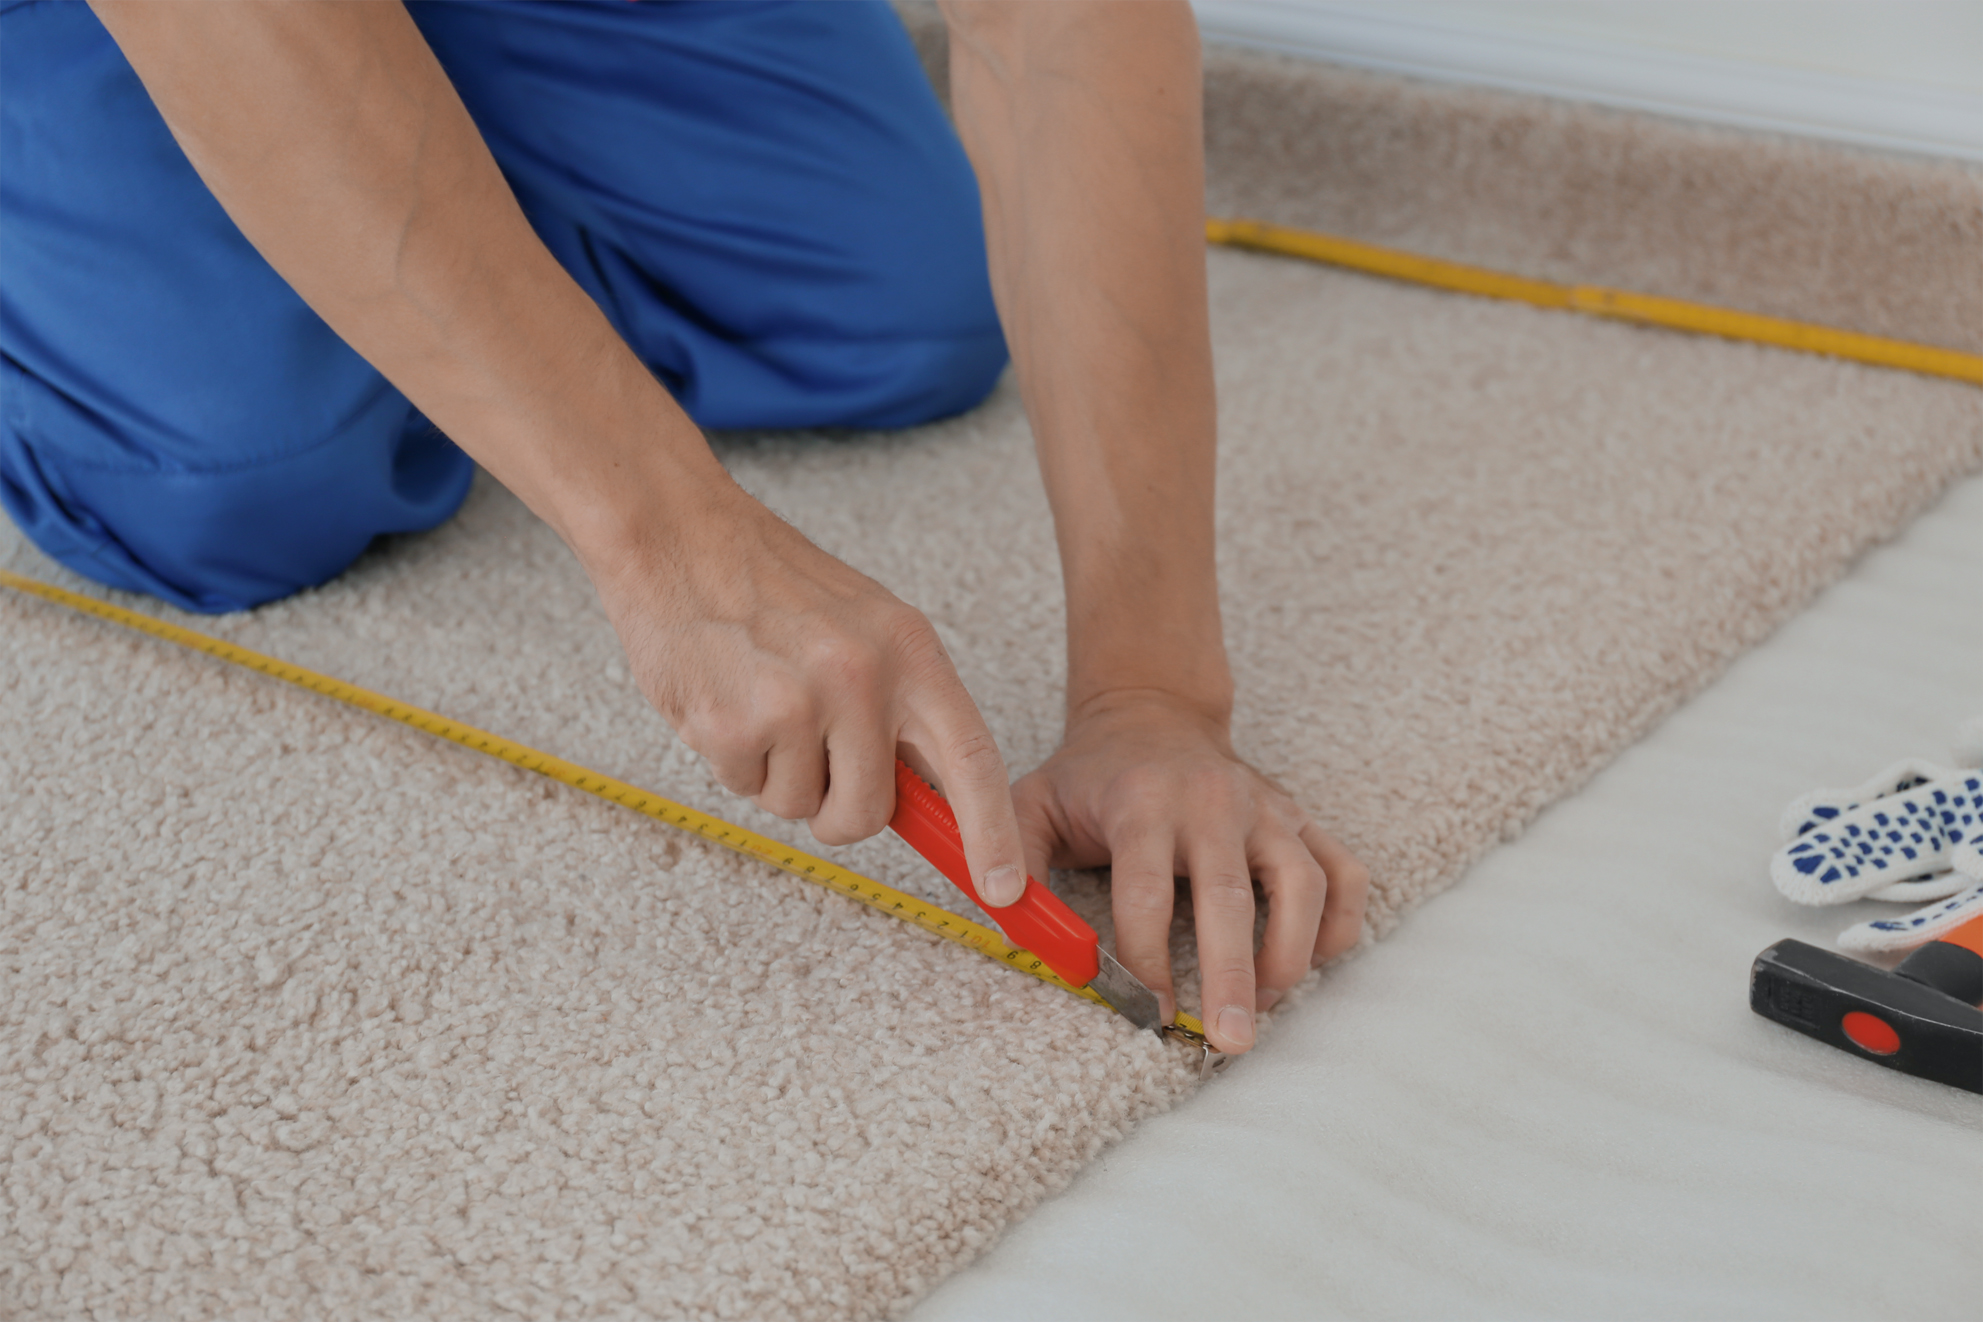 Coral Springs New Carpet: The Costs and Benefits